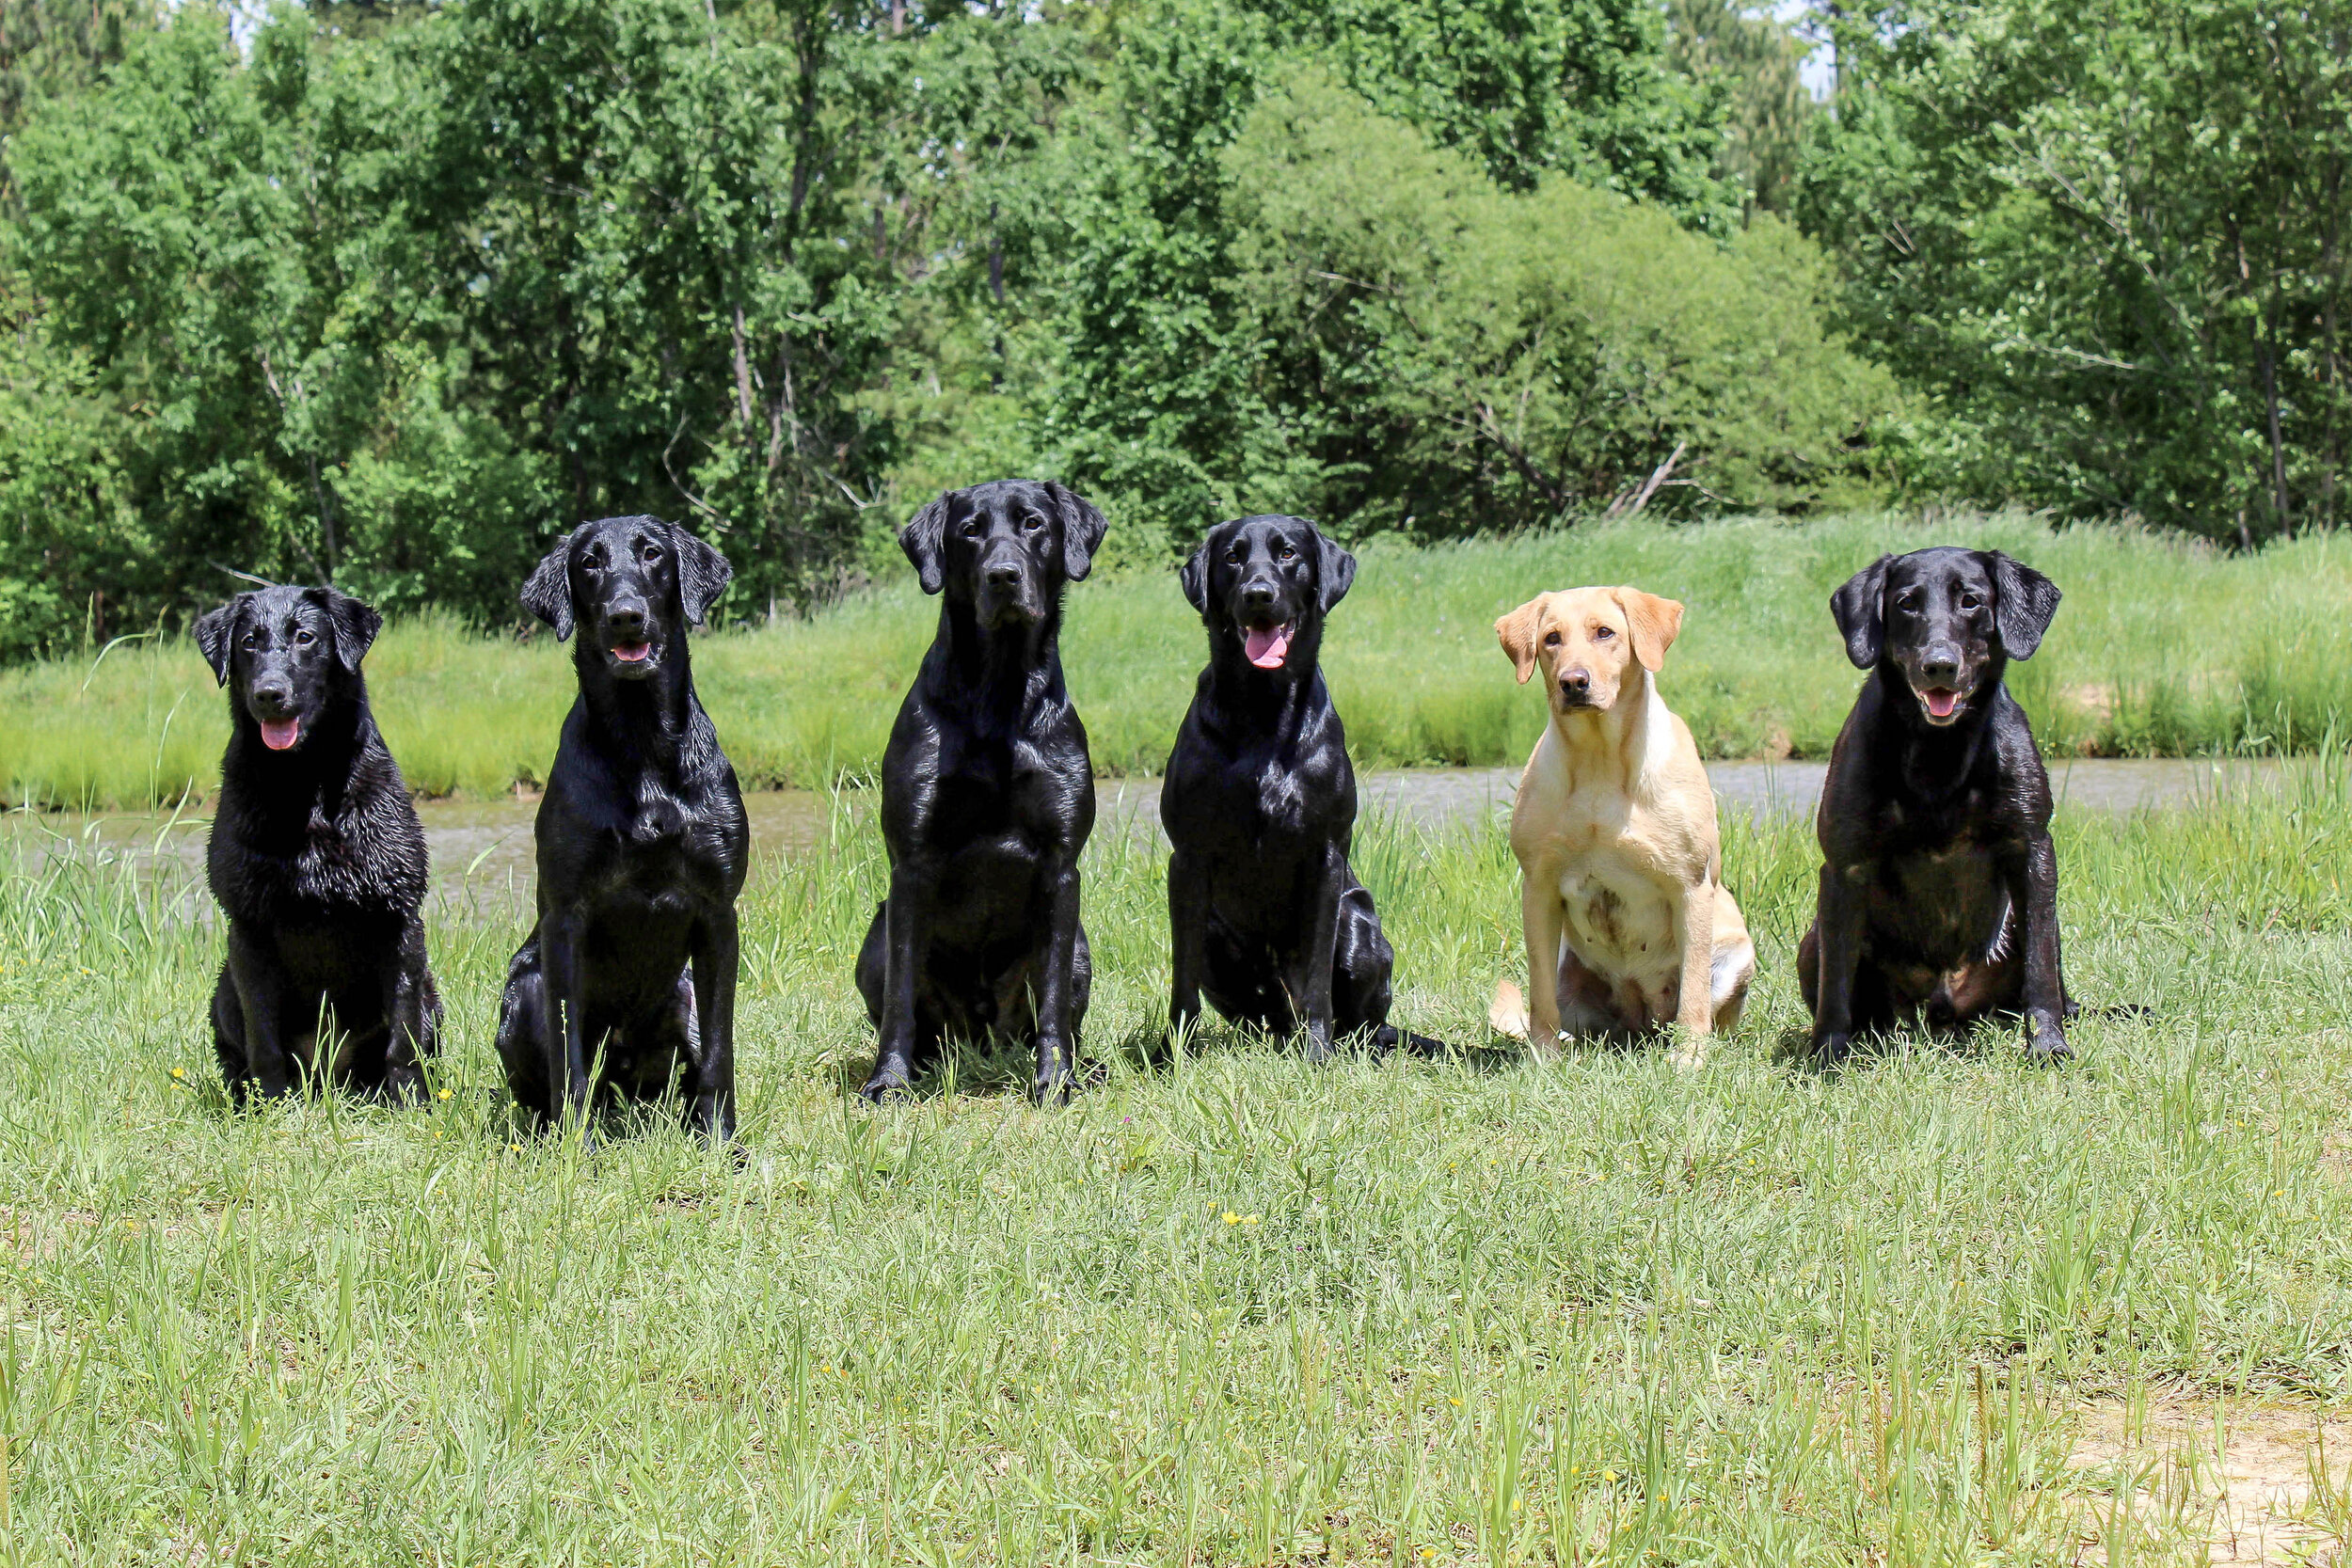 Cedar, Grizz, Clyde, Bruiser, Jewel and Beaux after a morning of training at Red River Retrievers. (Photo by Hannah Wren)